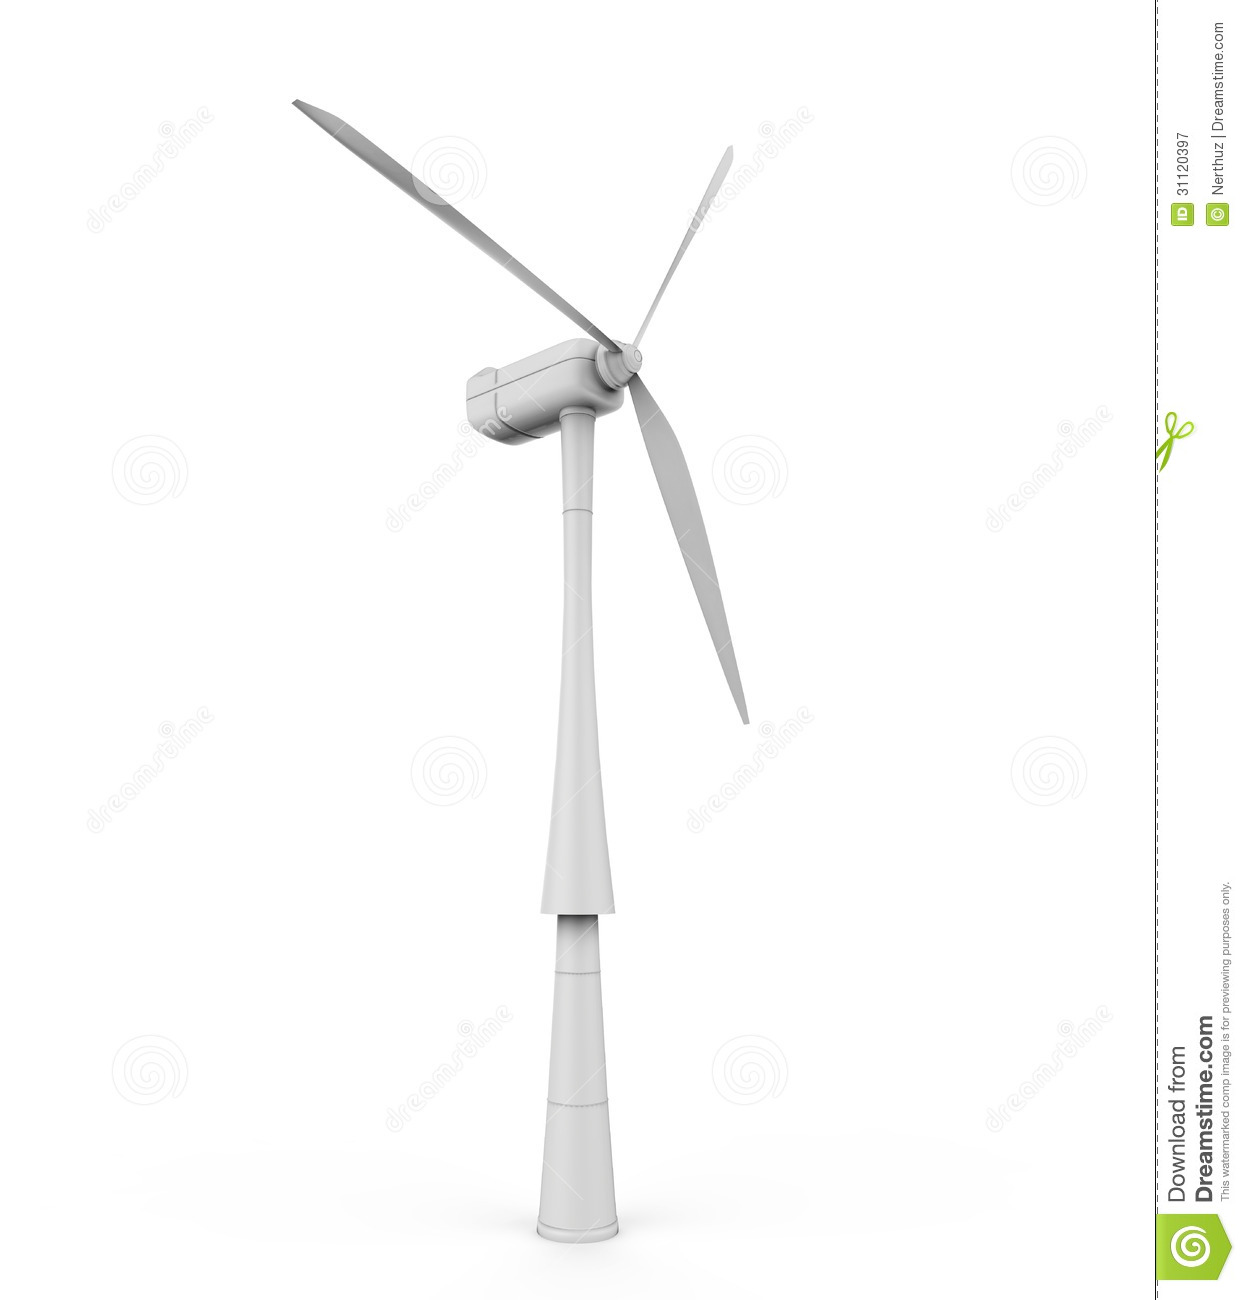 how to make a wind turbine model out of paper